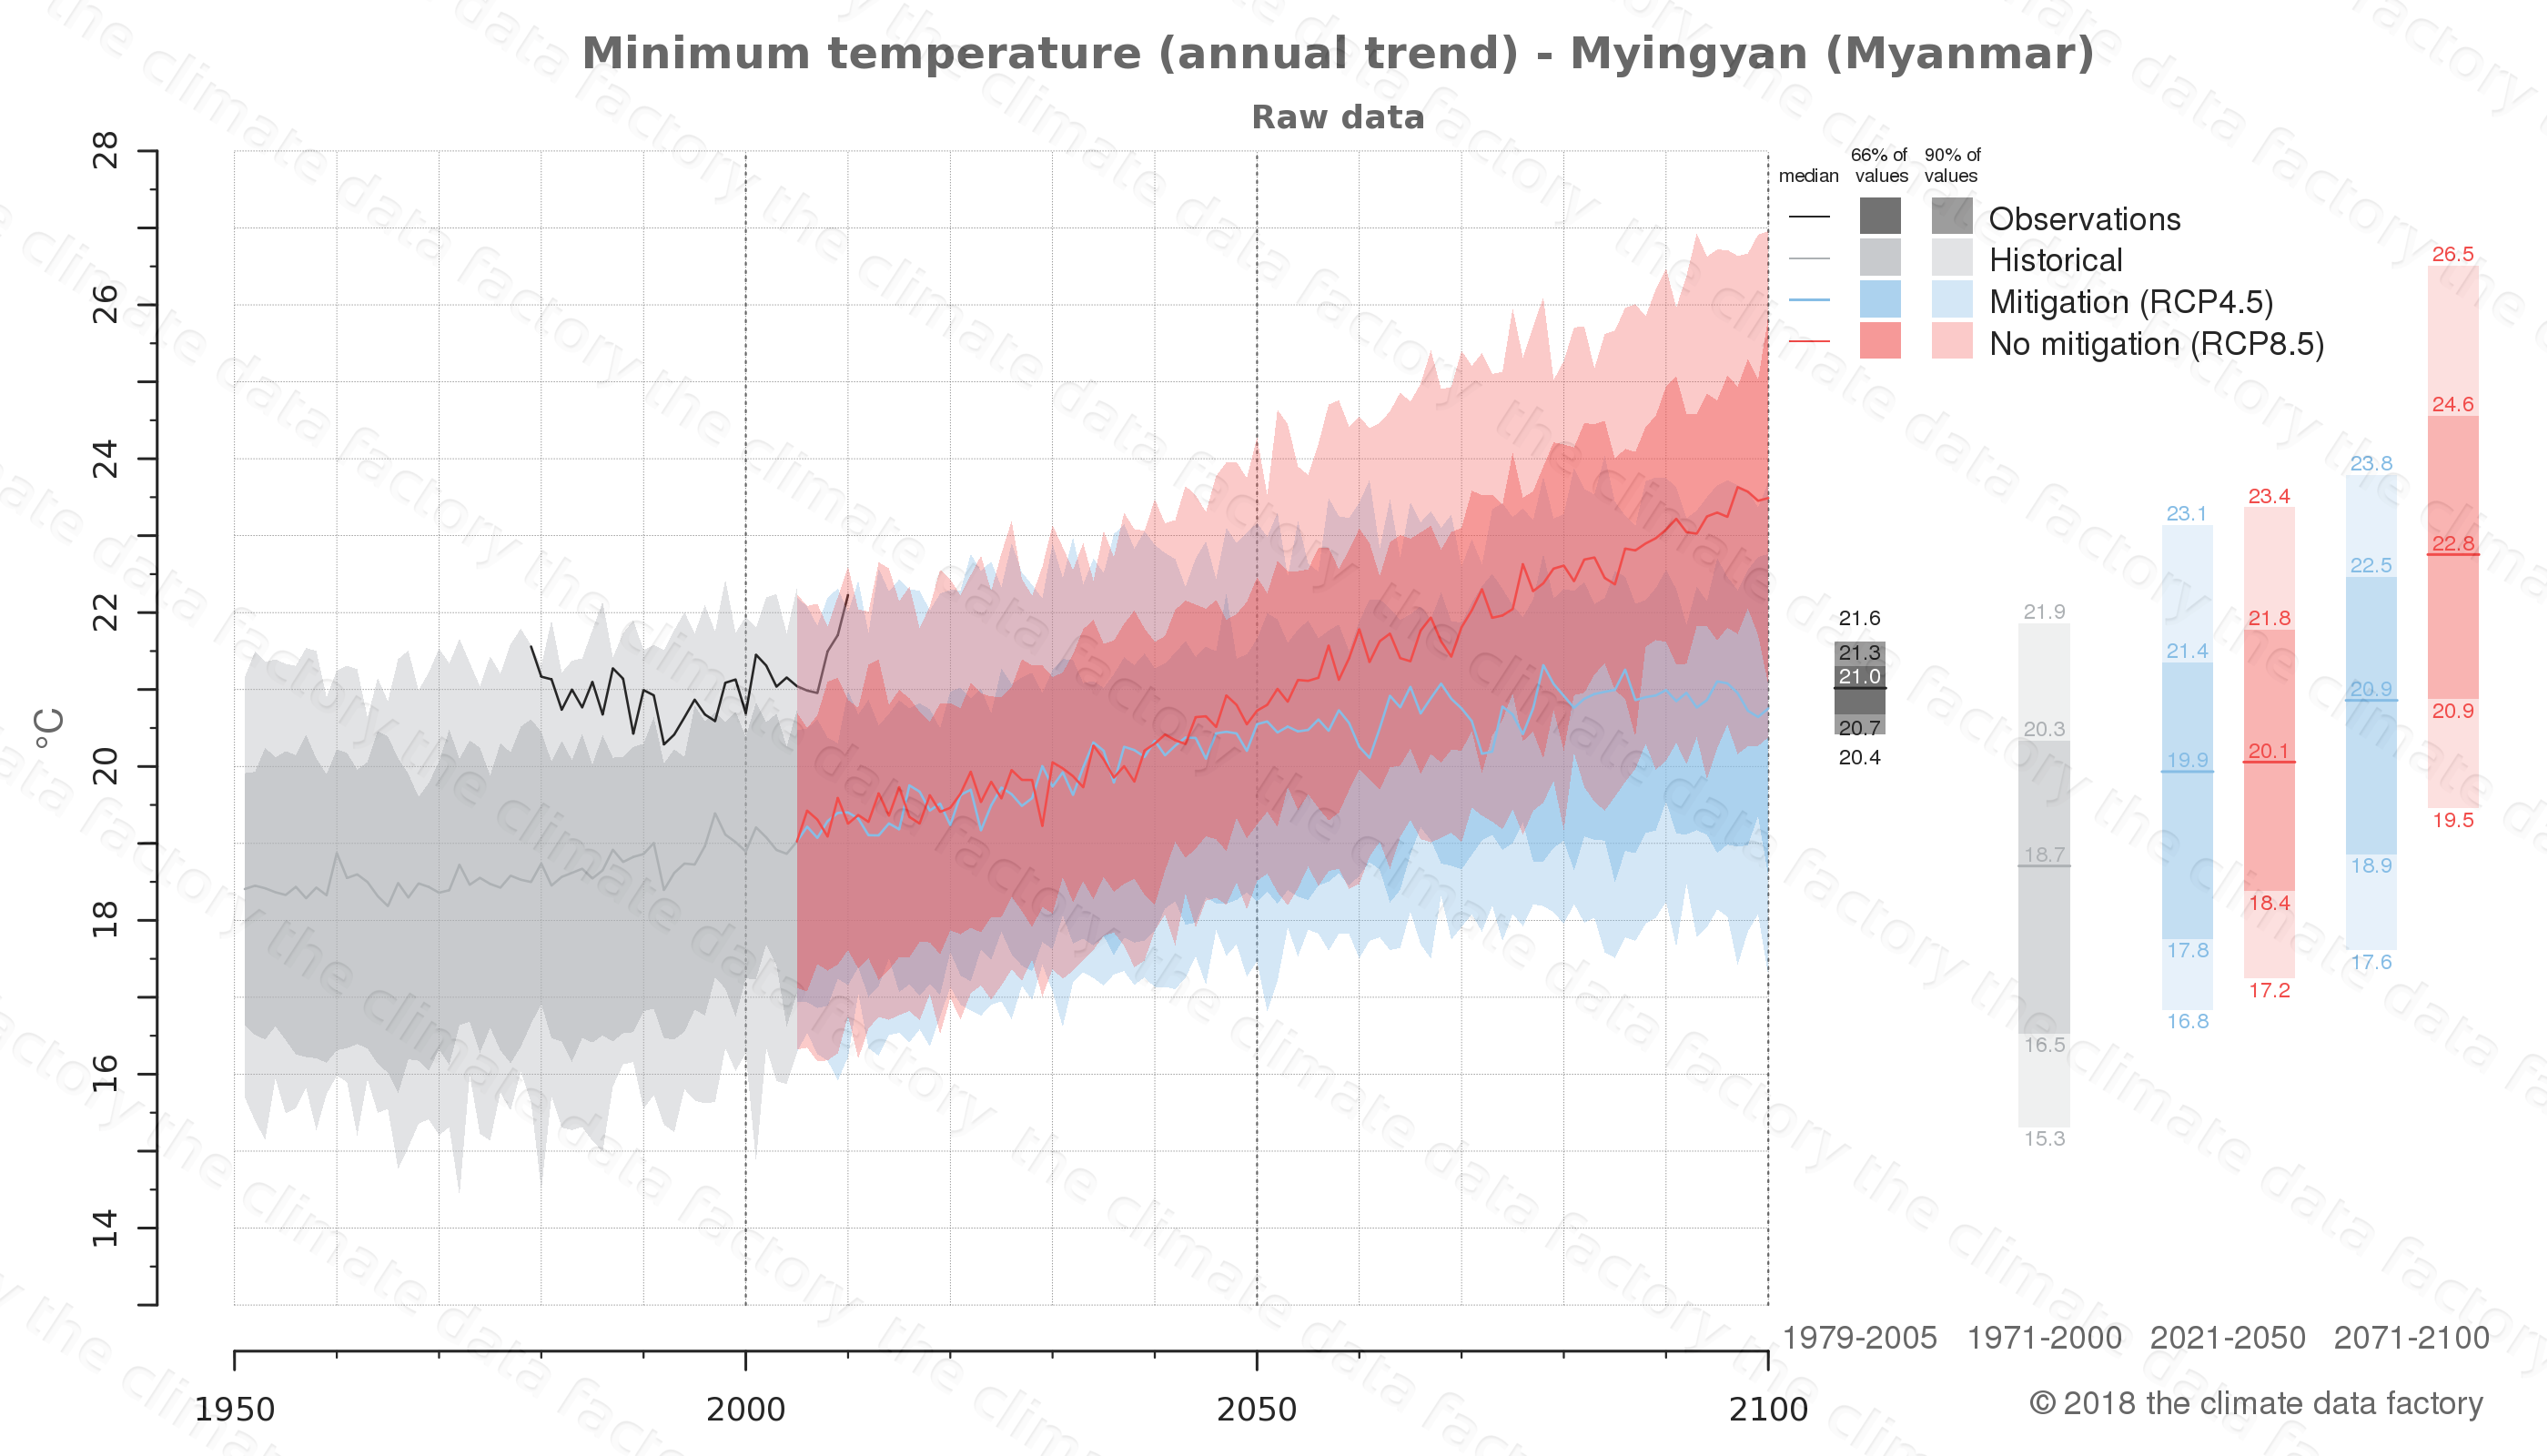 climate change data policy adaptation climate graph city data minimum-temperature myingyan myanmar